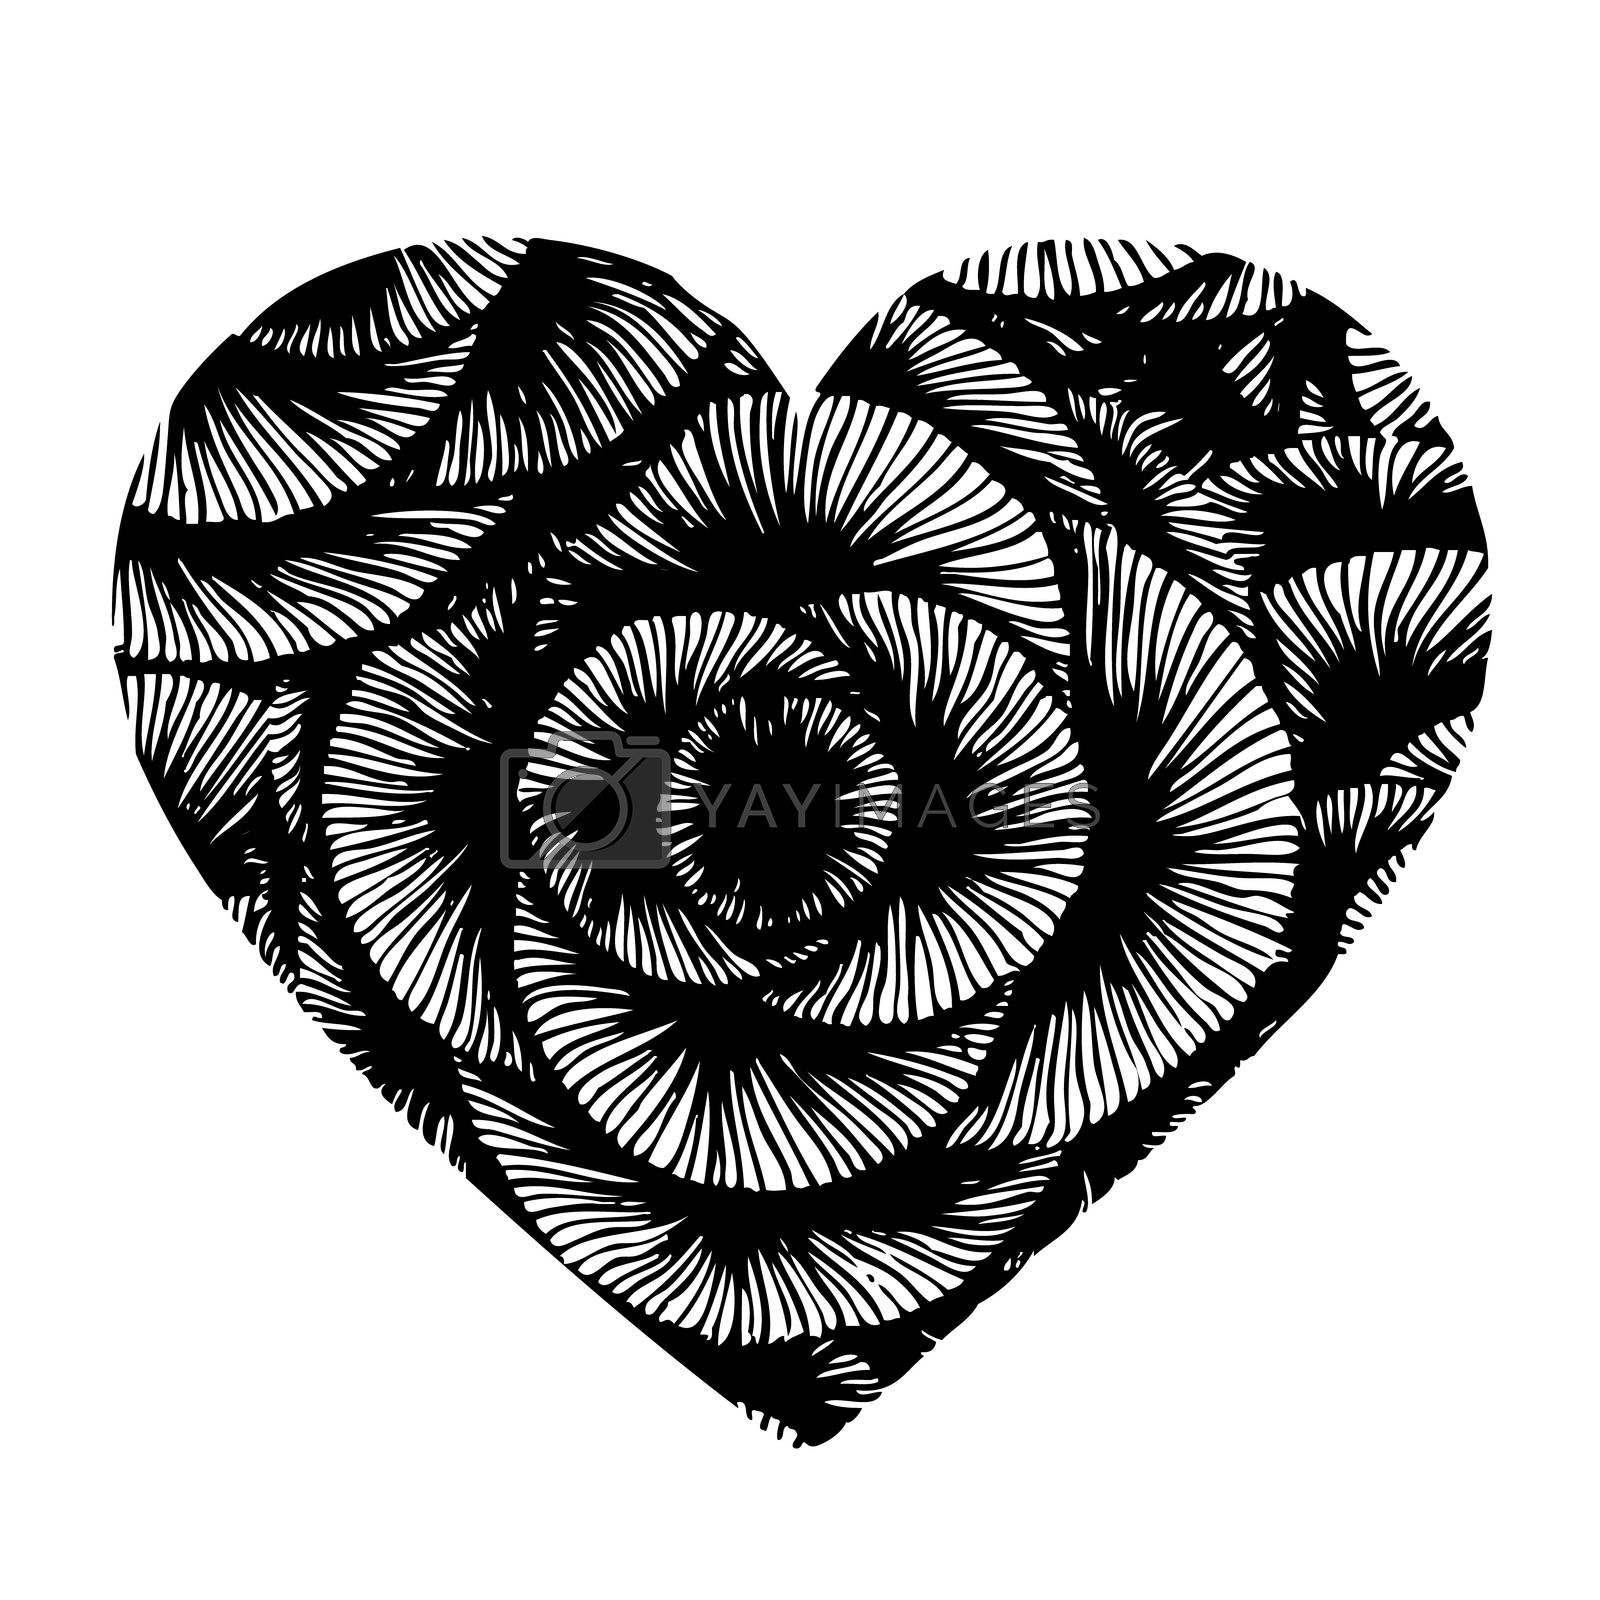 Royalty free image of heart design by simpleBE